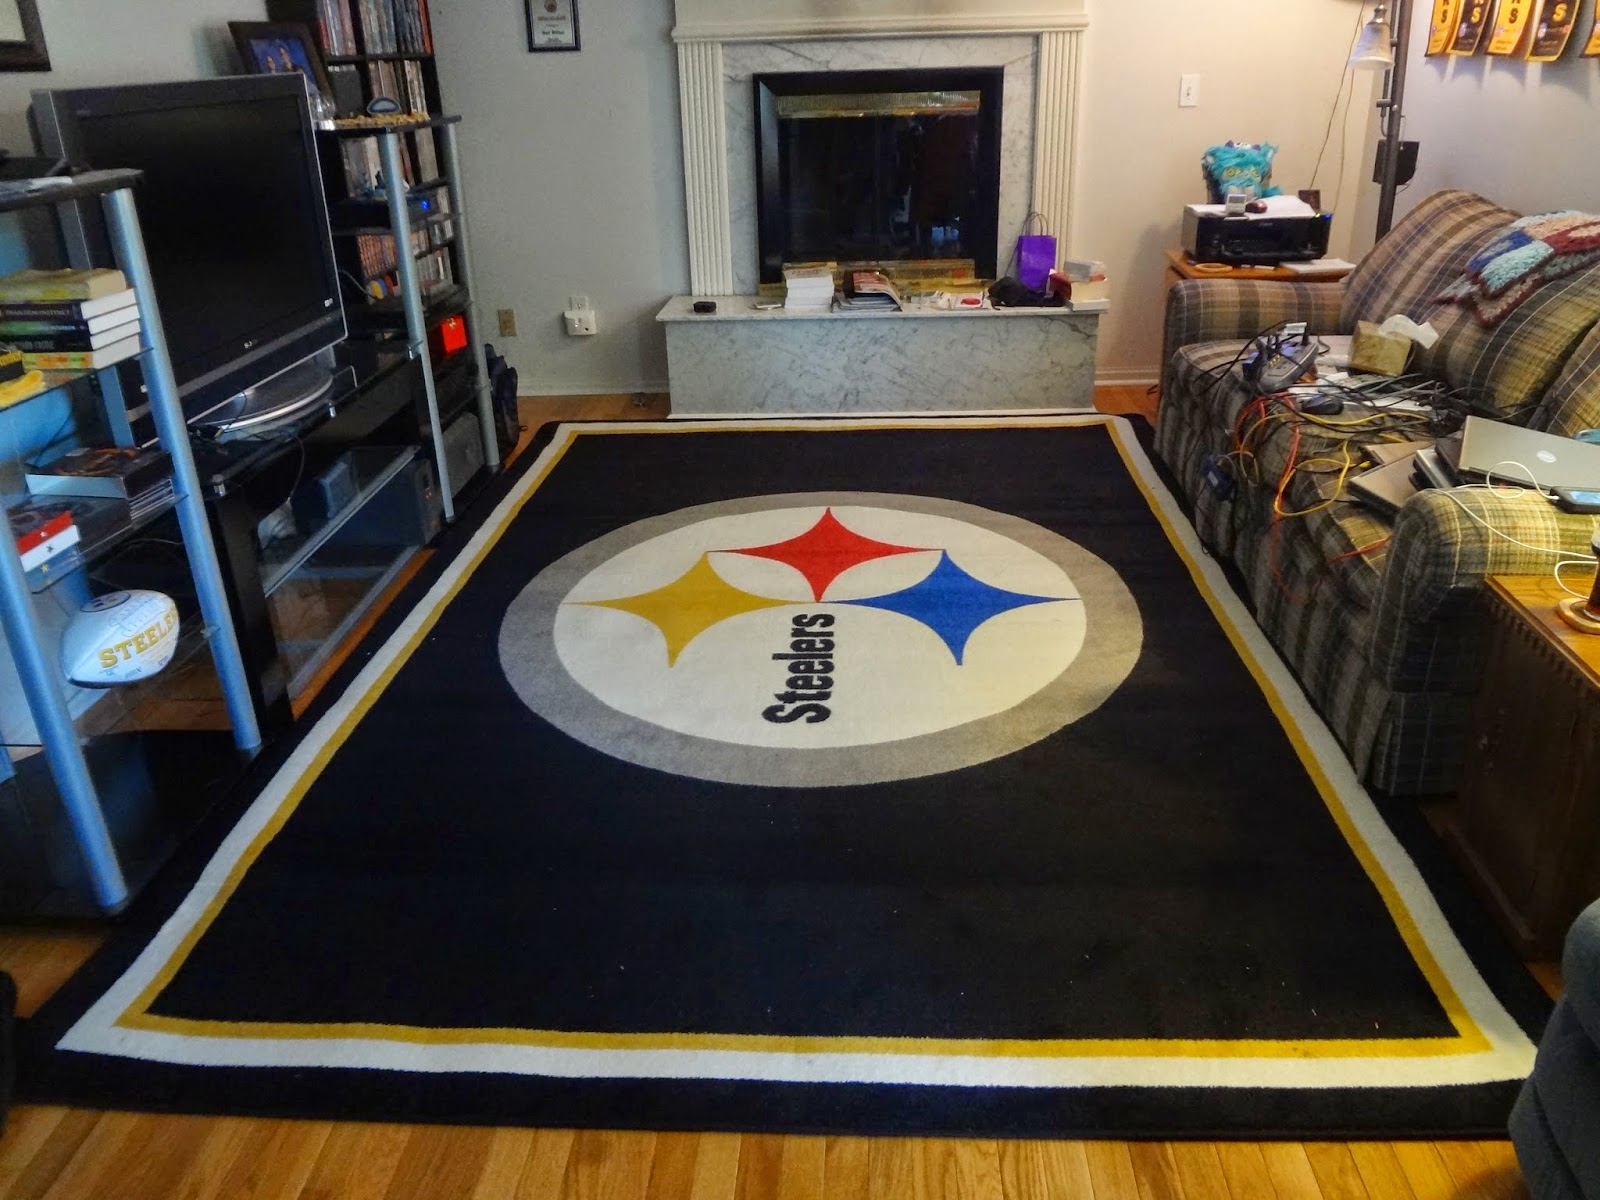 pittsburgh steelers area rug - rug designs